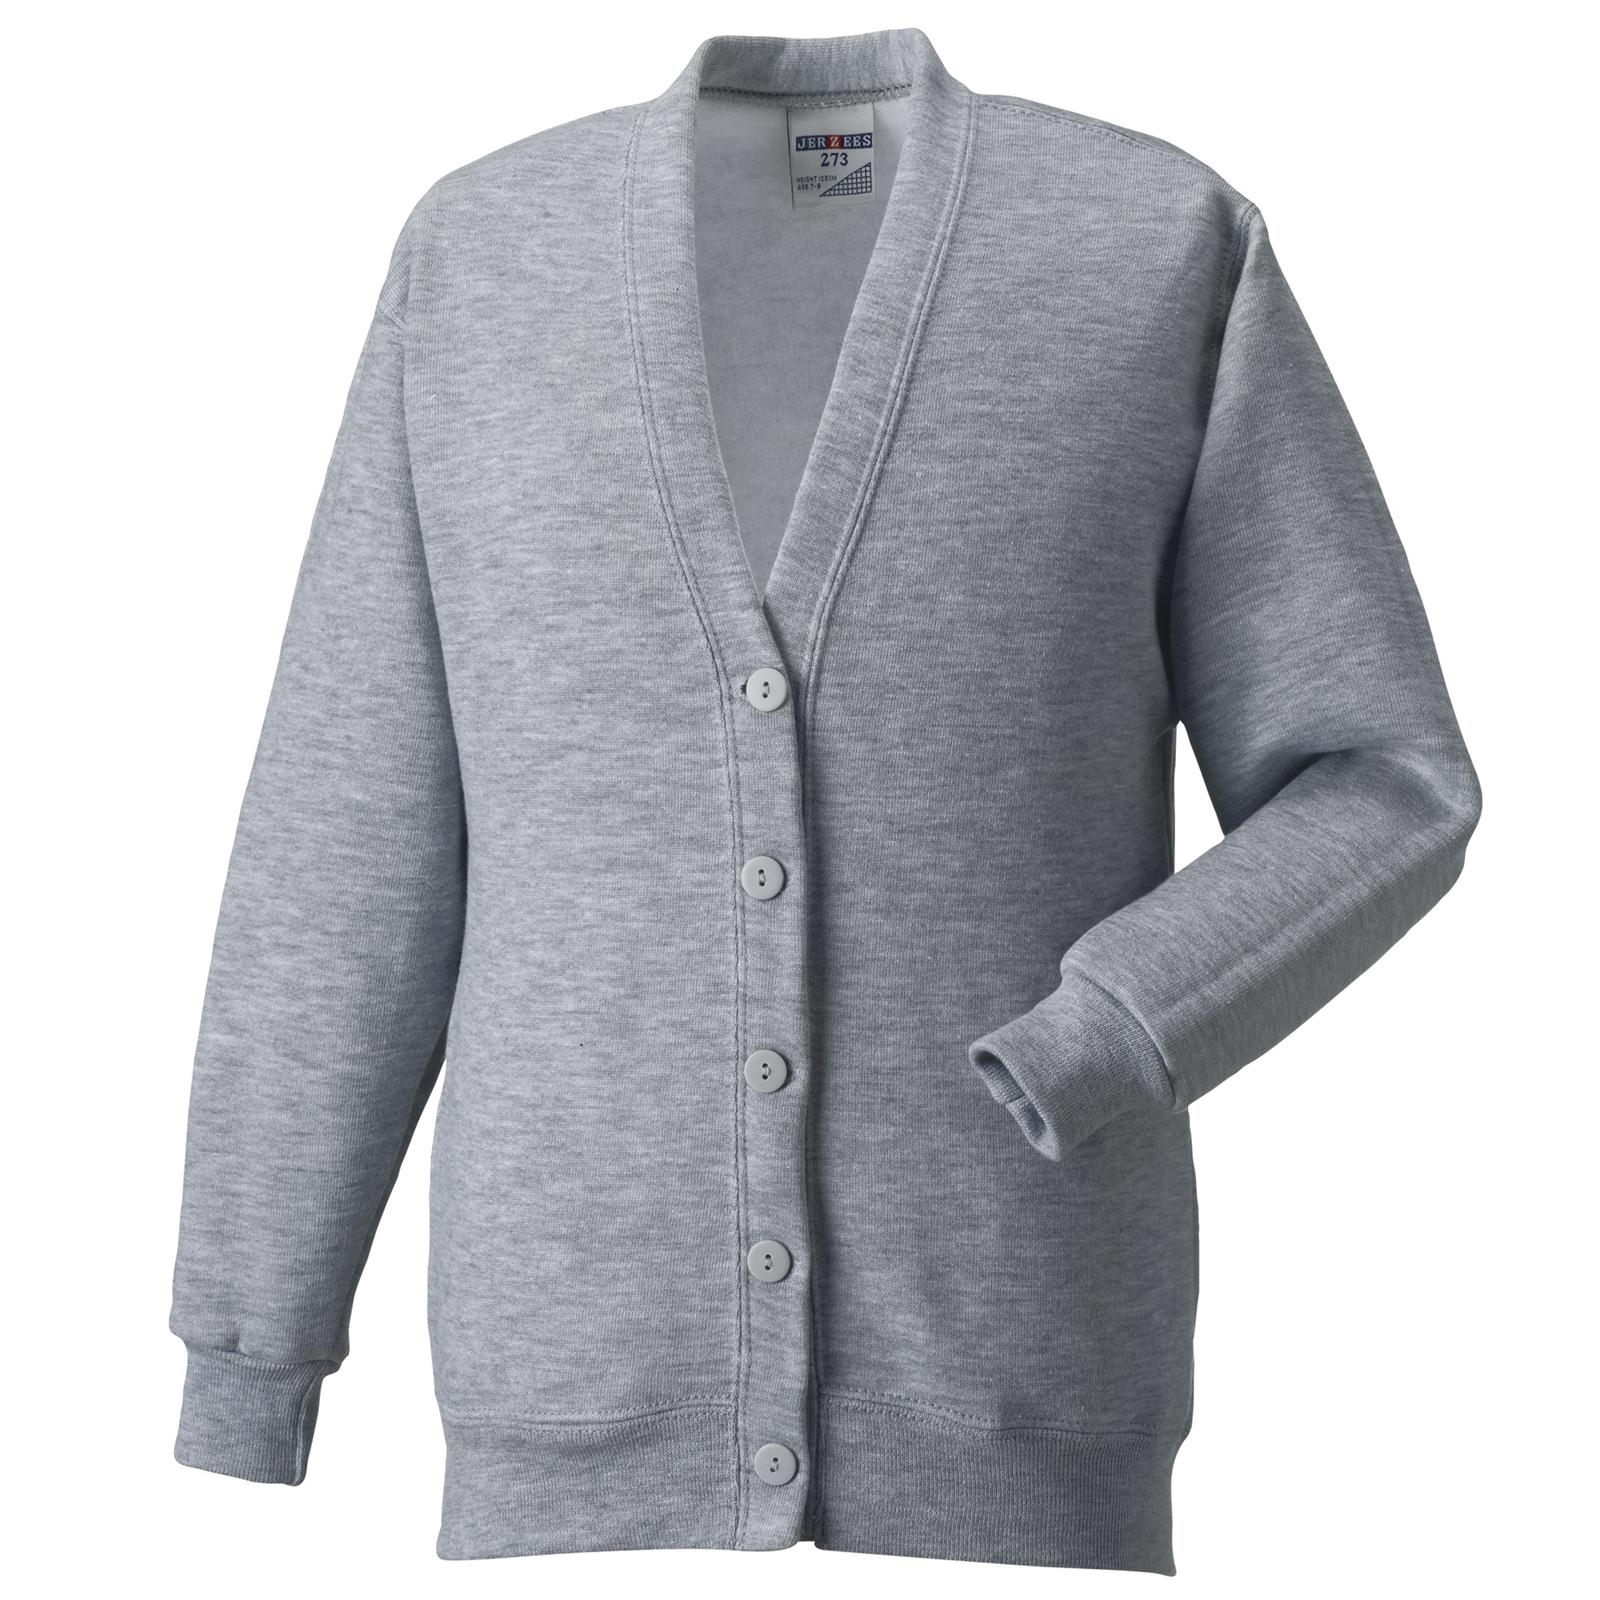 Jerzees Fashion Mens Womens Fleece Cardigan Sweatshirt in 8 ...